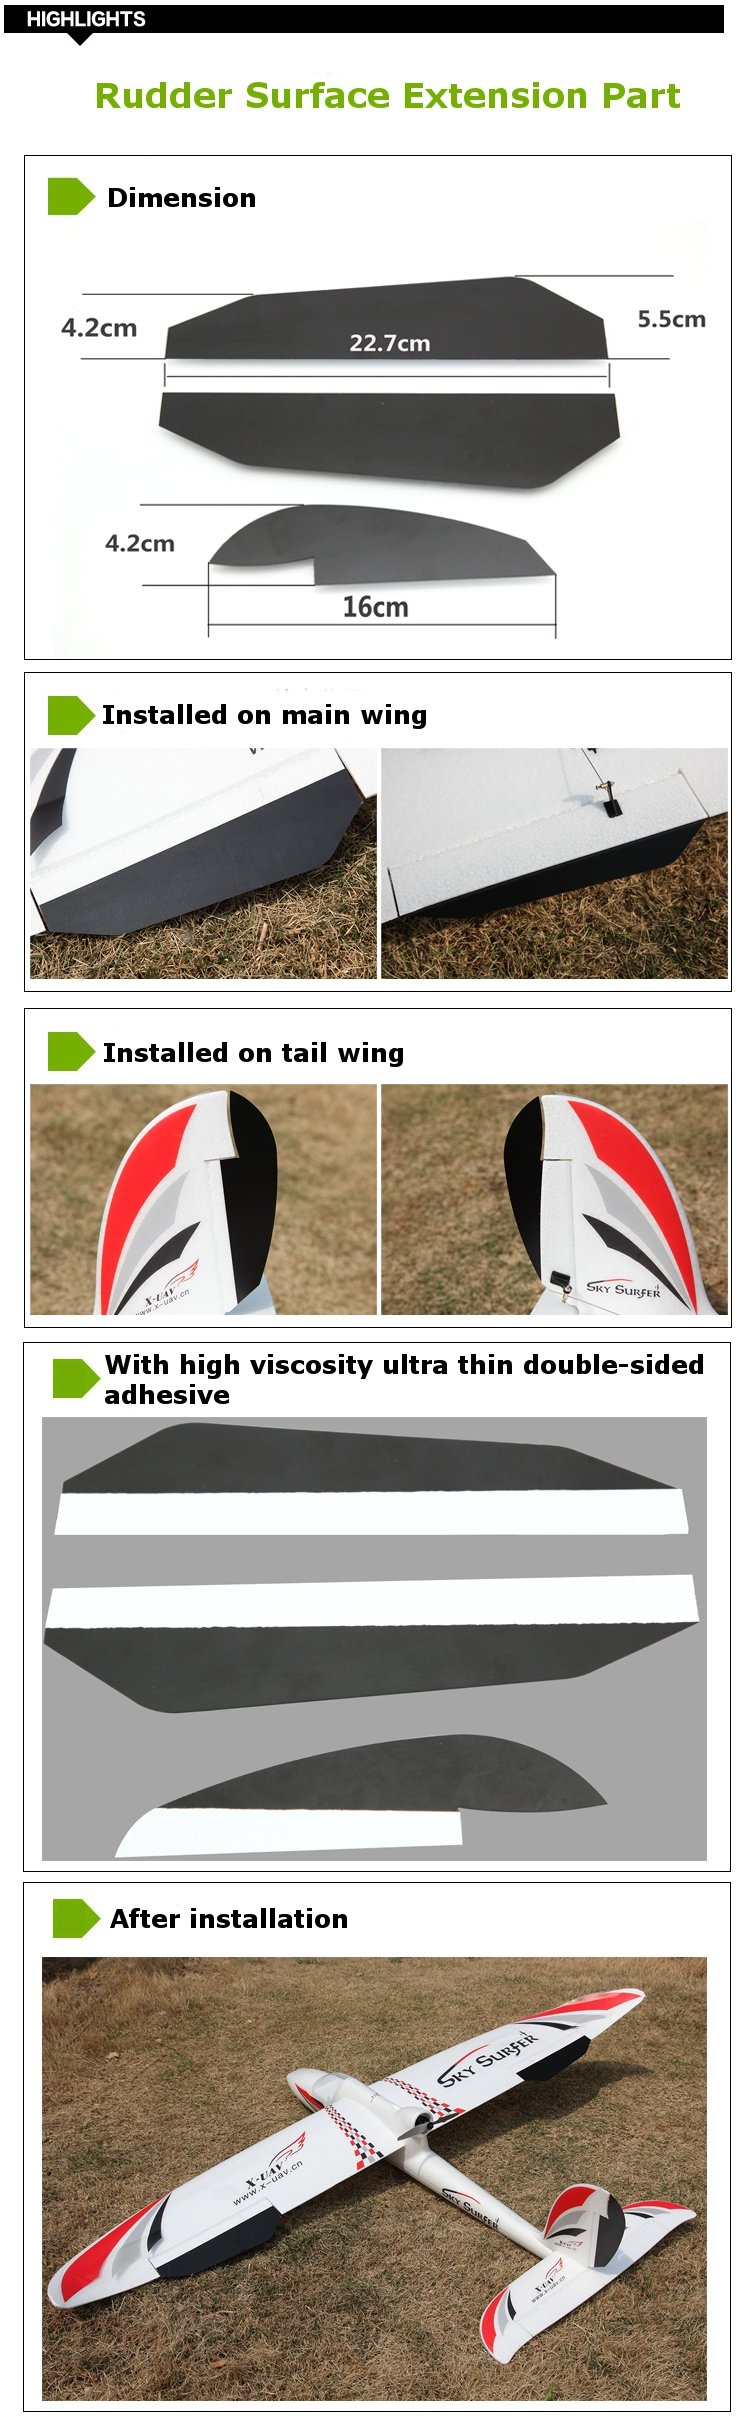 Glassfiber Cicada Wing Rudder Surface Extension Part For X-UAV Sky Surfer X8 RC Airplane